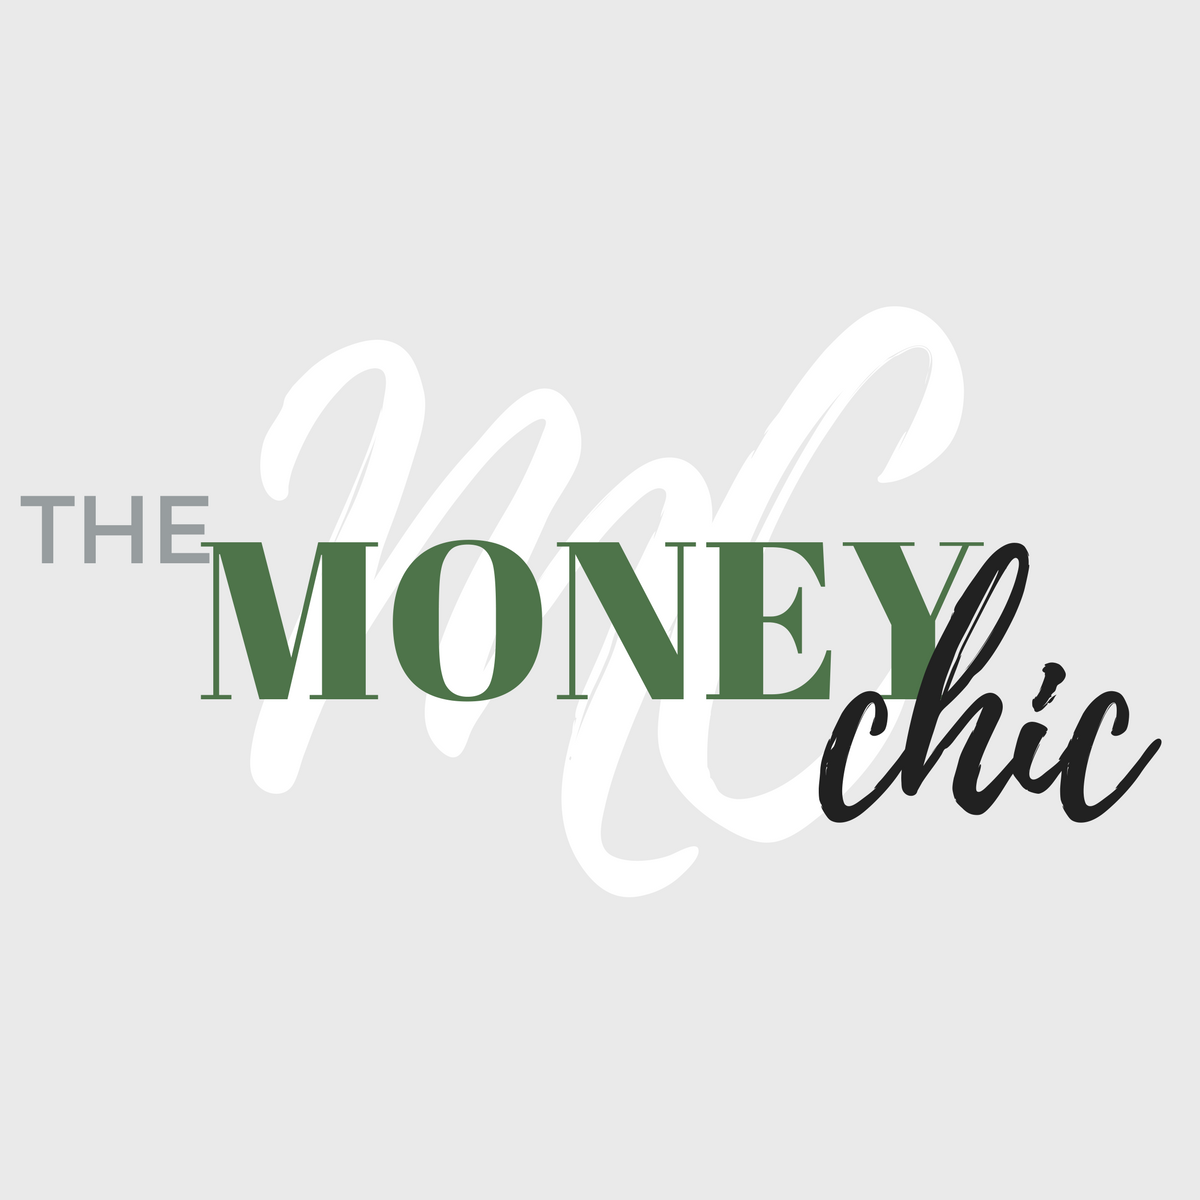 The Money Chic